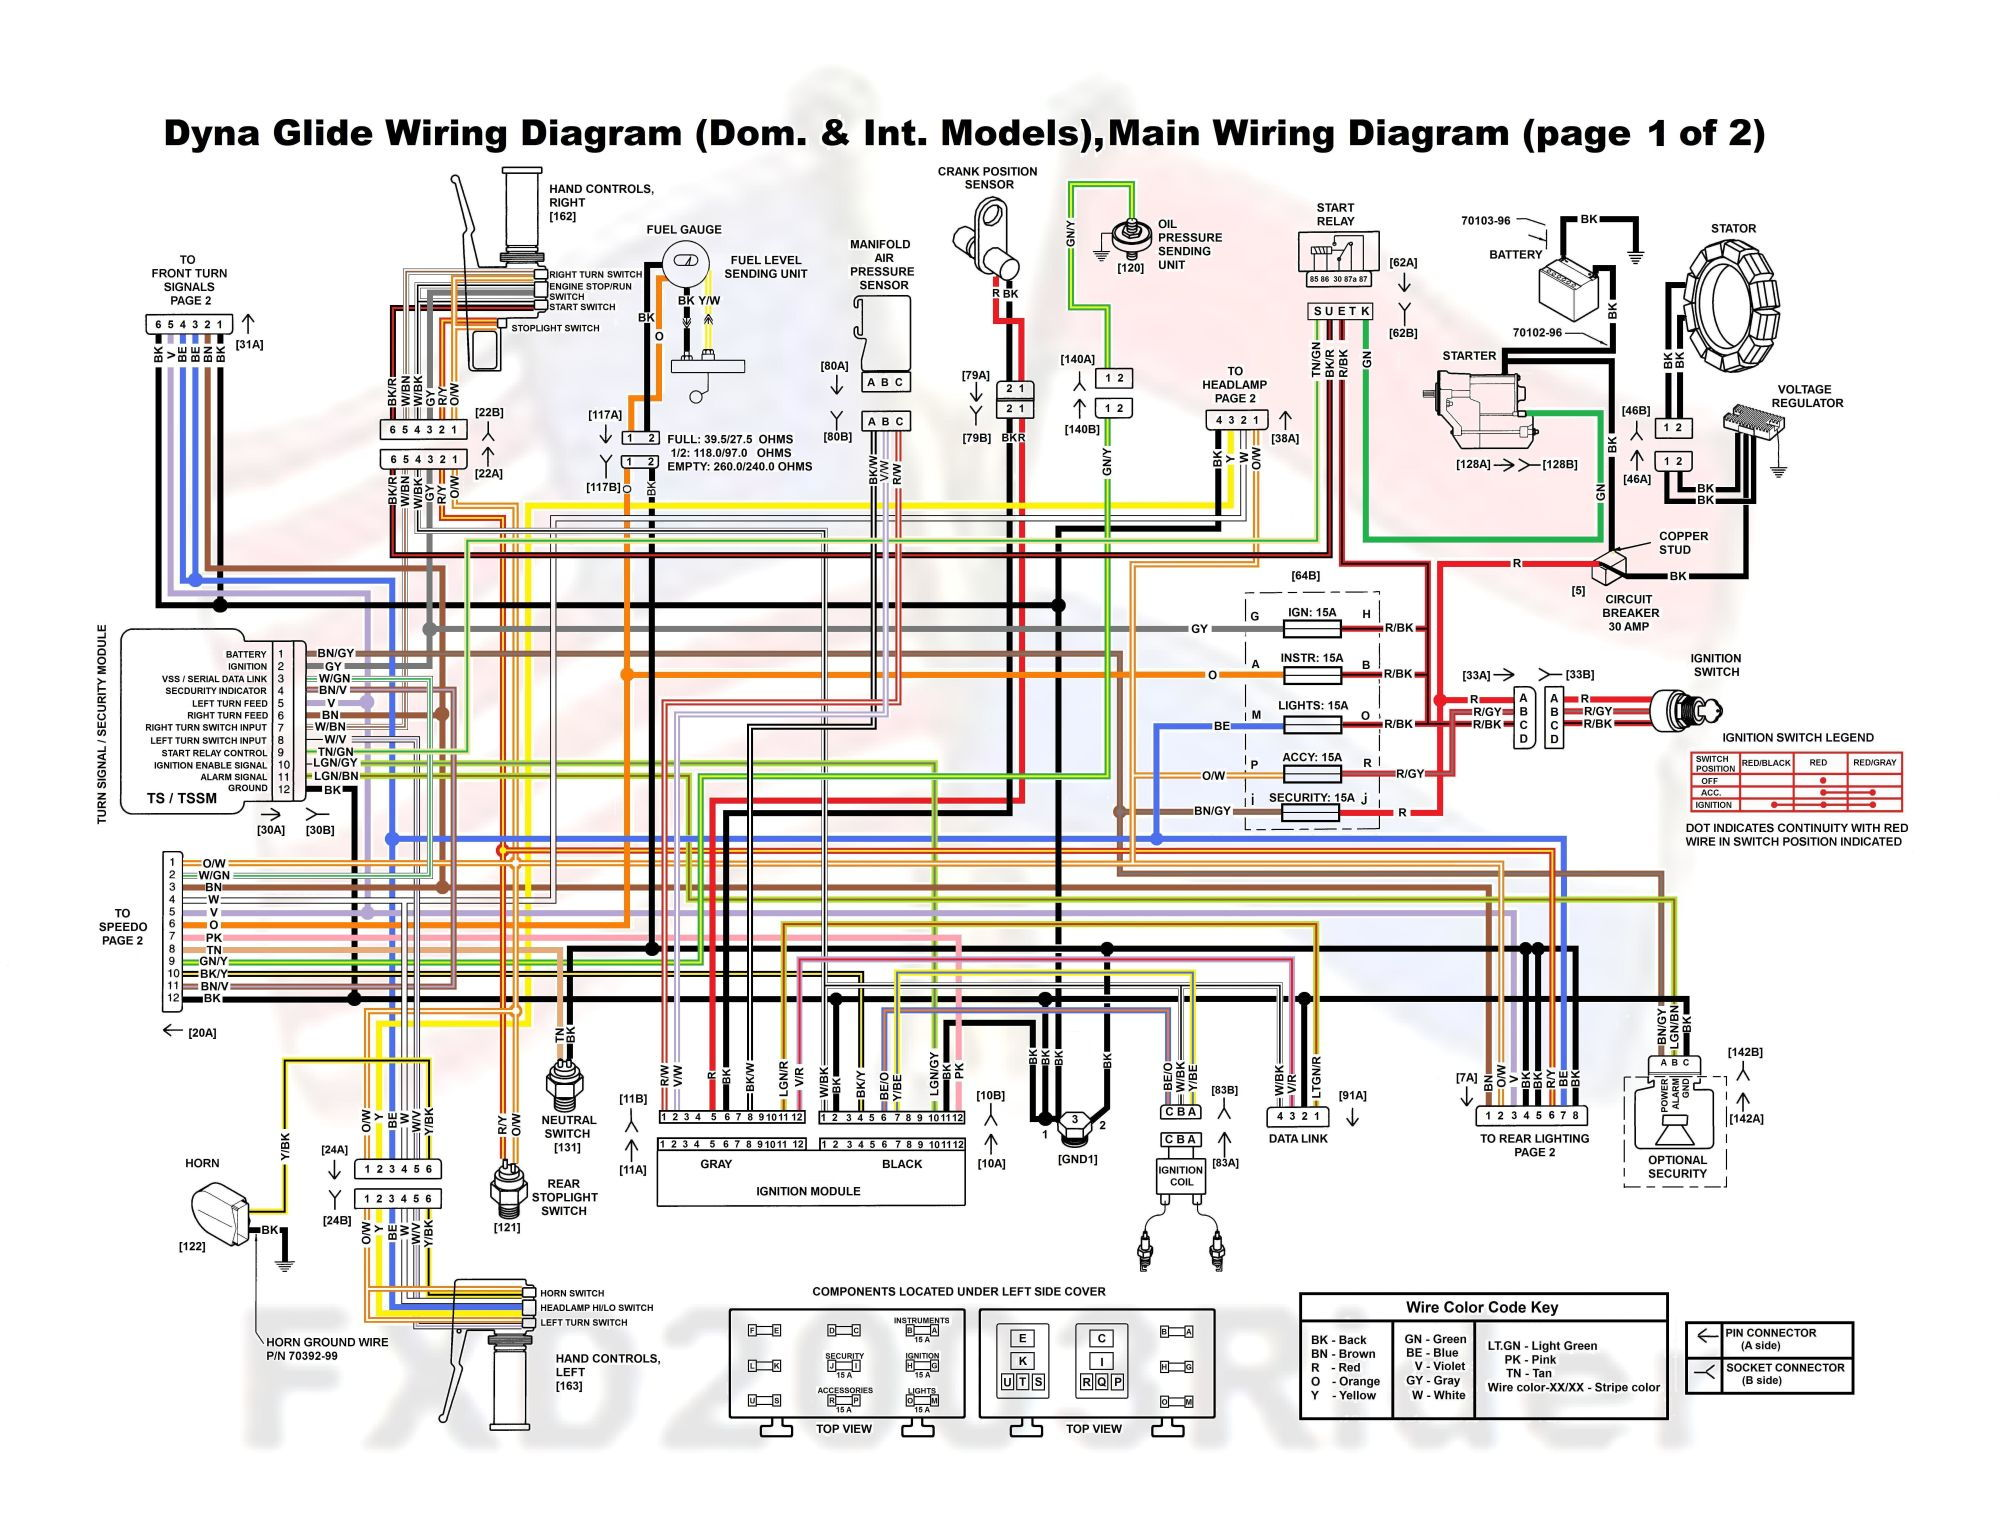 1994 harley sportster wiring diagram typical ansul system need help davidson forums